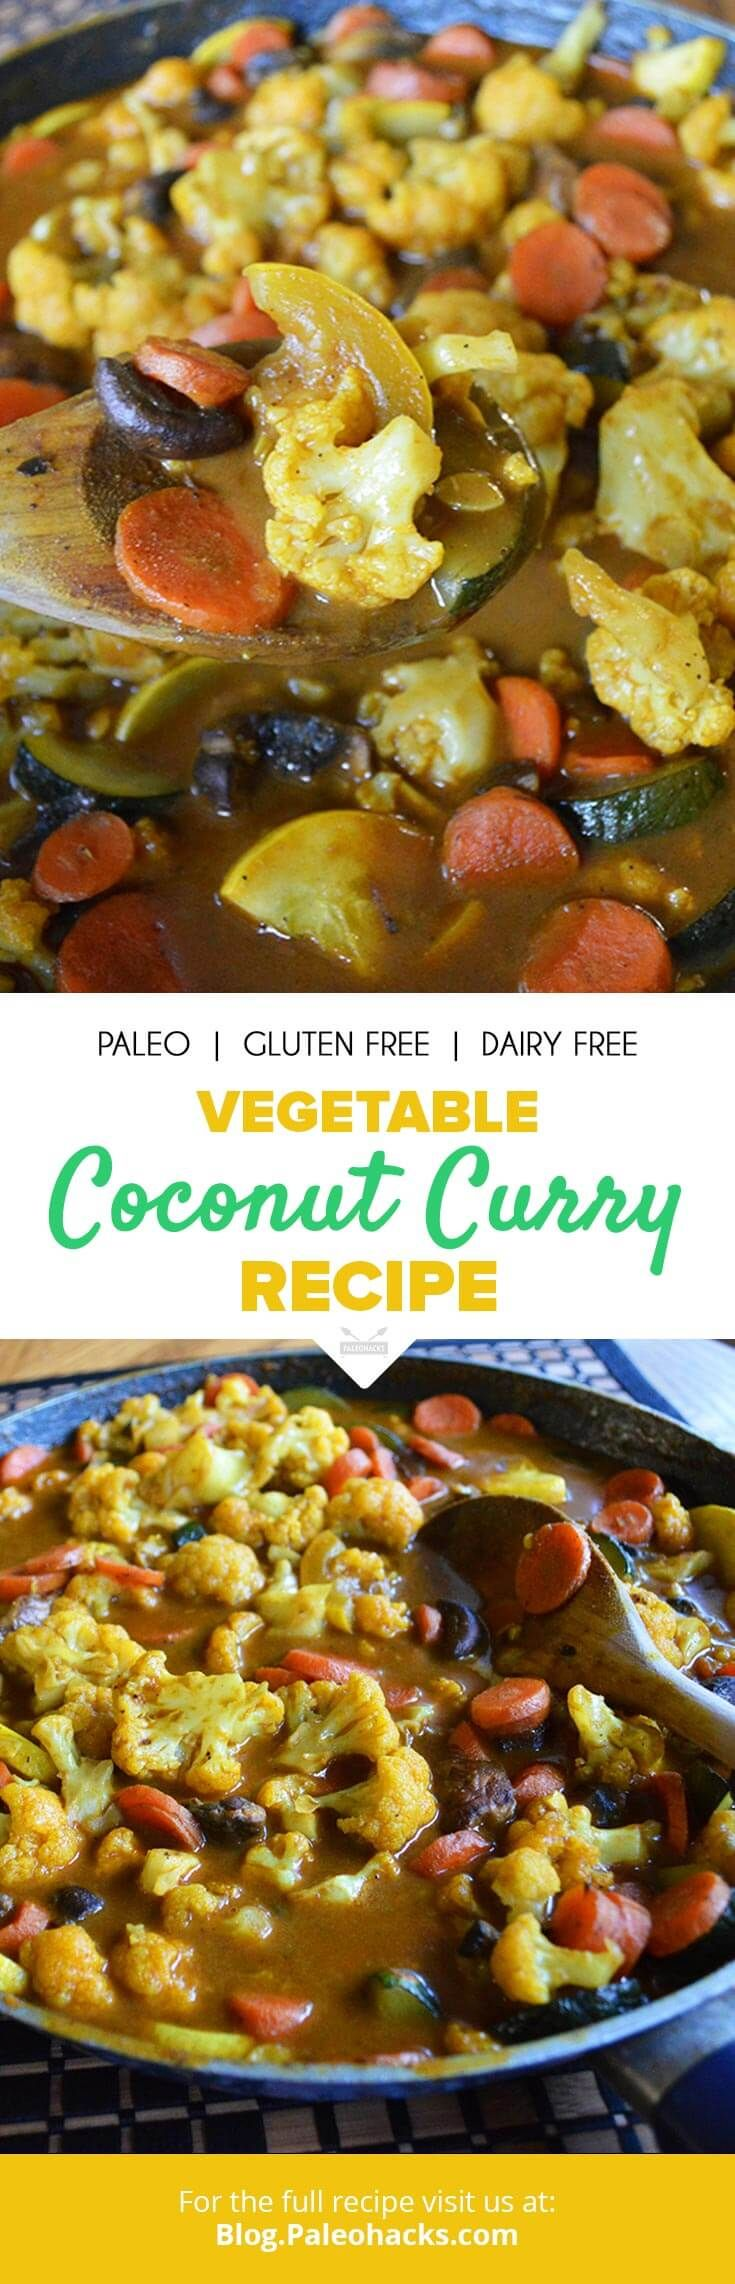 Craving a flavorful, deeply-spiced dish to make for dinner? Get the recipe here: http://paleo.co/vegcococurry